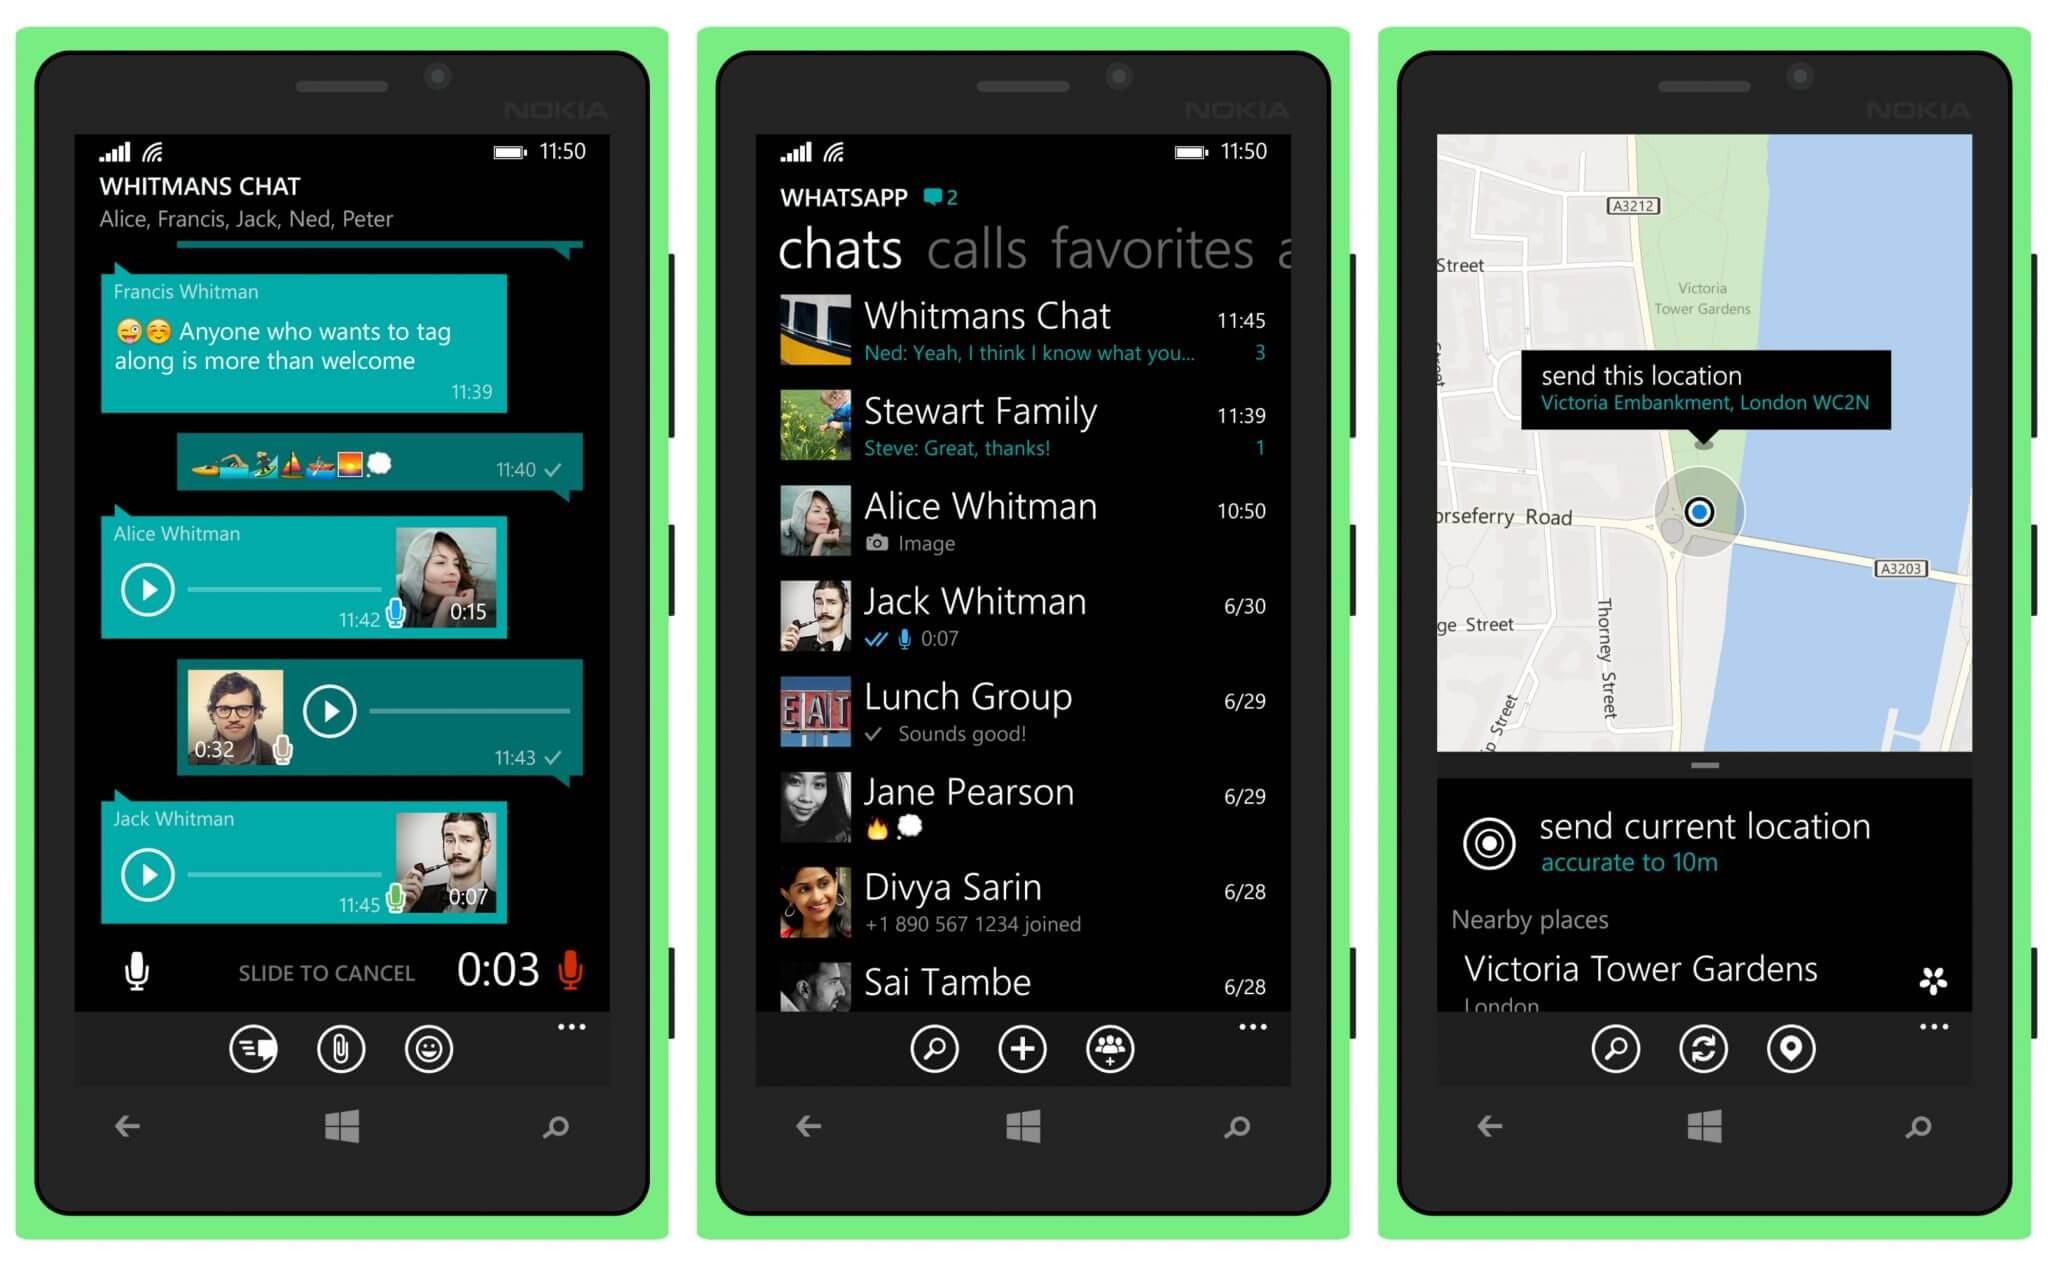 whatsapp windows phone - WhatsApp Beta para Windows 10 Mobile ganha suporte à formatação de textos